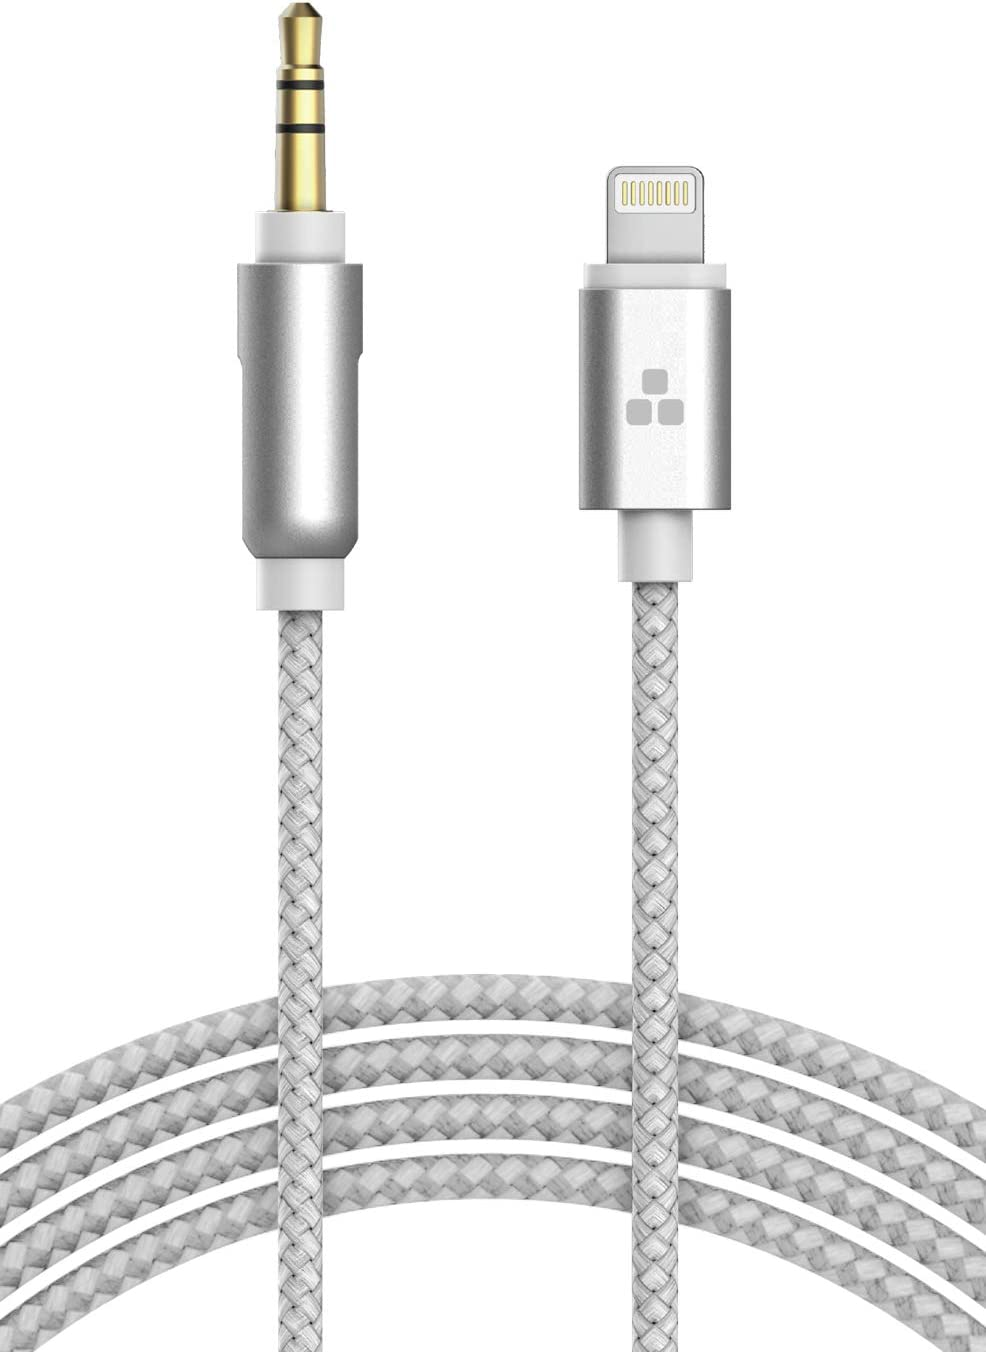 (Apple MFI Certified) iPhone Aux Lightning Cord to Male 3.5mm Auxiliary Cable (iPhone Audio Link to Car Jack, Headphones & Speakers) (White)